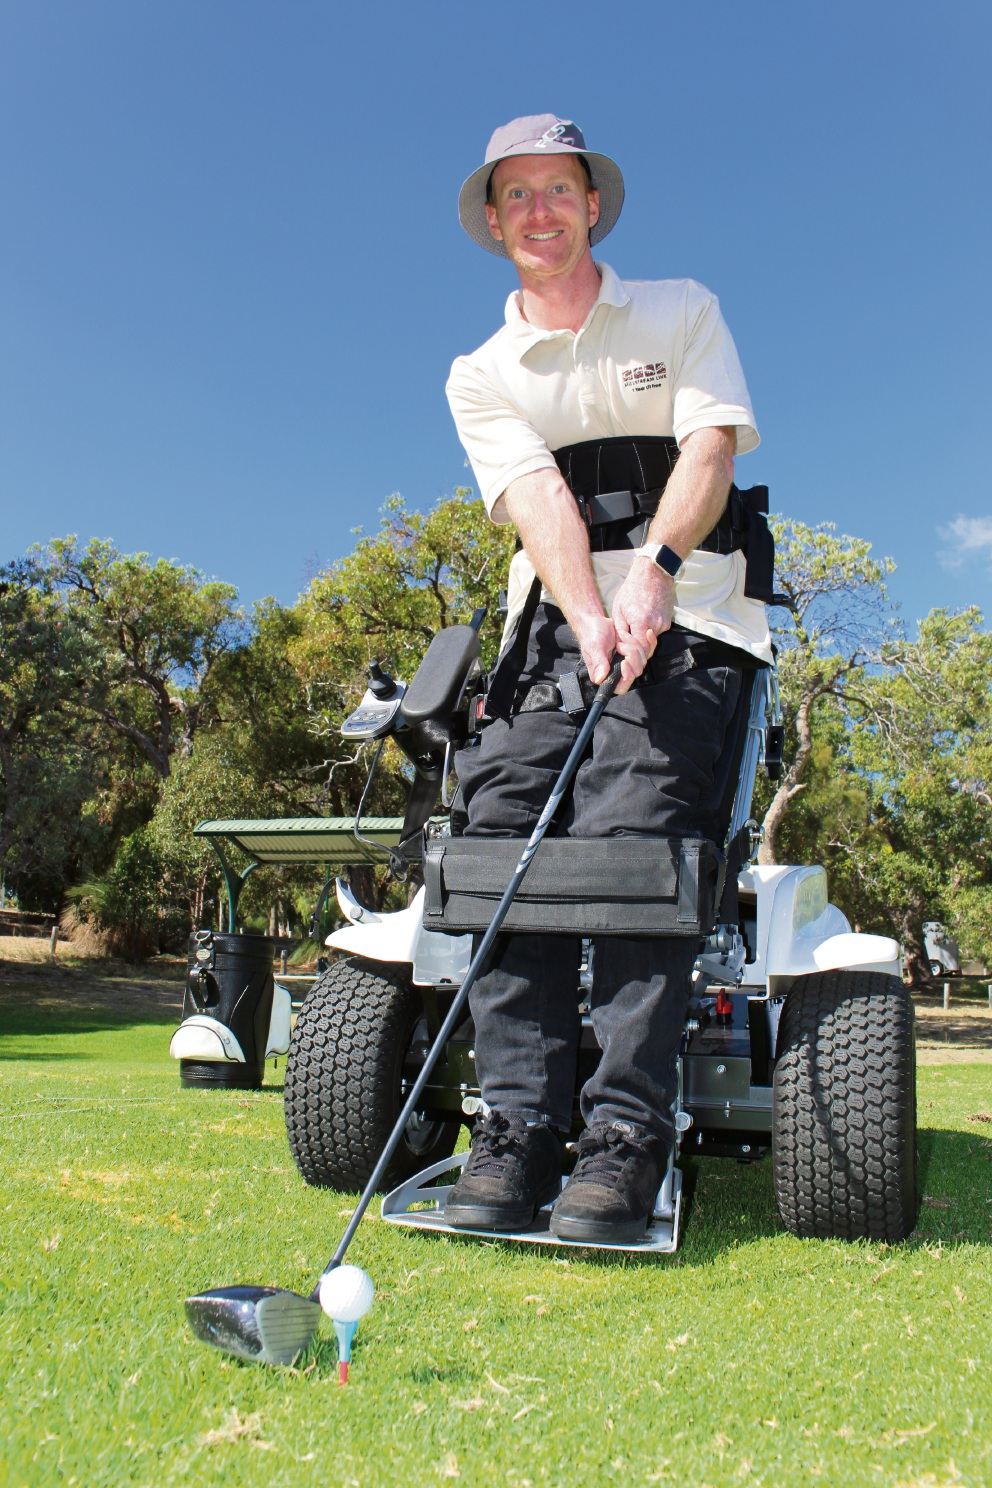 Empower Golf helped Clint Morgan return to the sport for the first time since an accident left him paralysed in September last year.